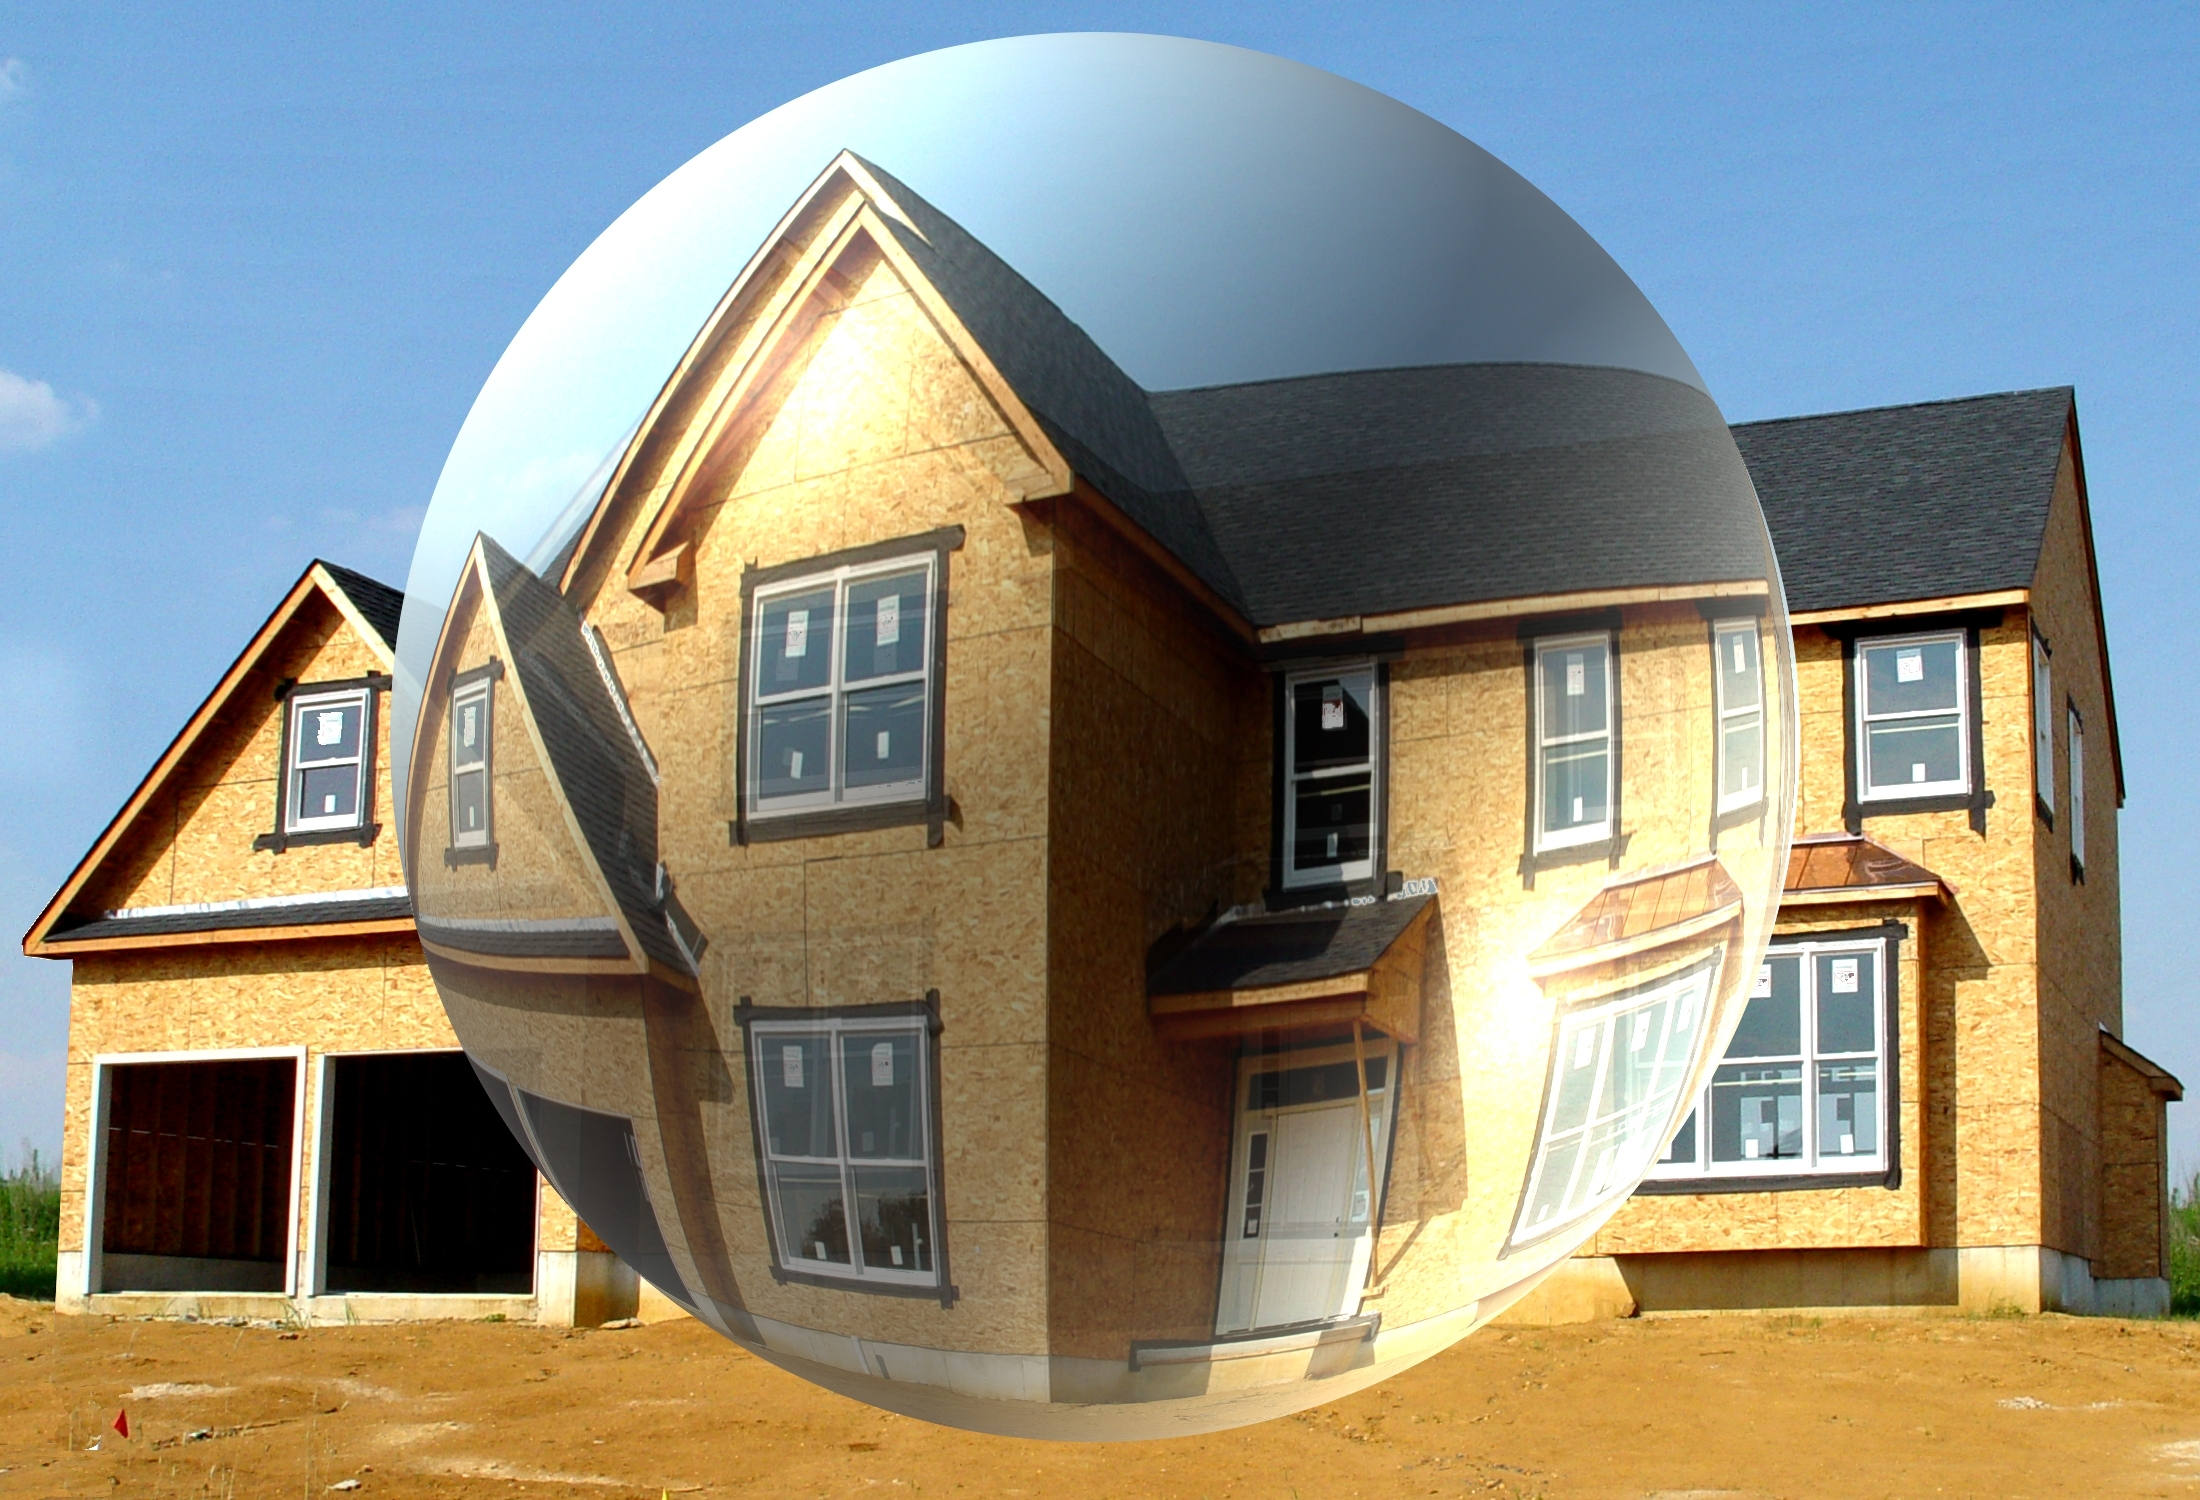 will-the-housing-market-crash-is-there-a-housing-bubble